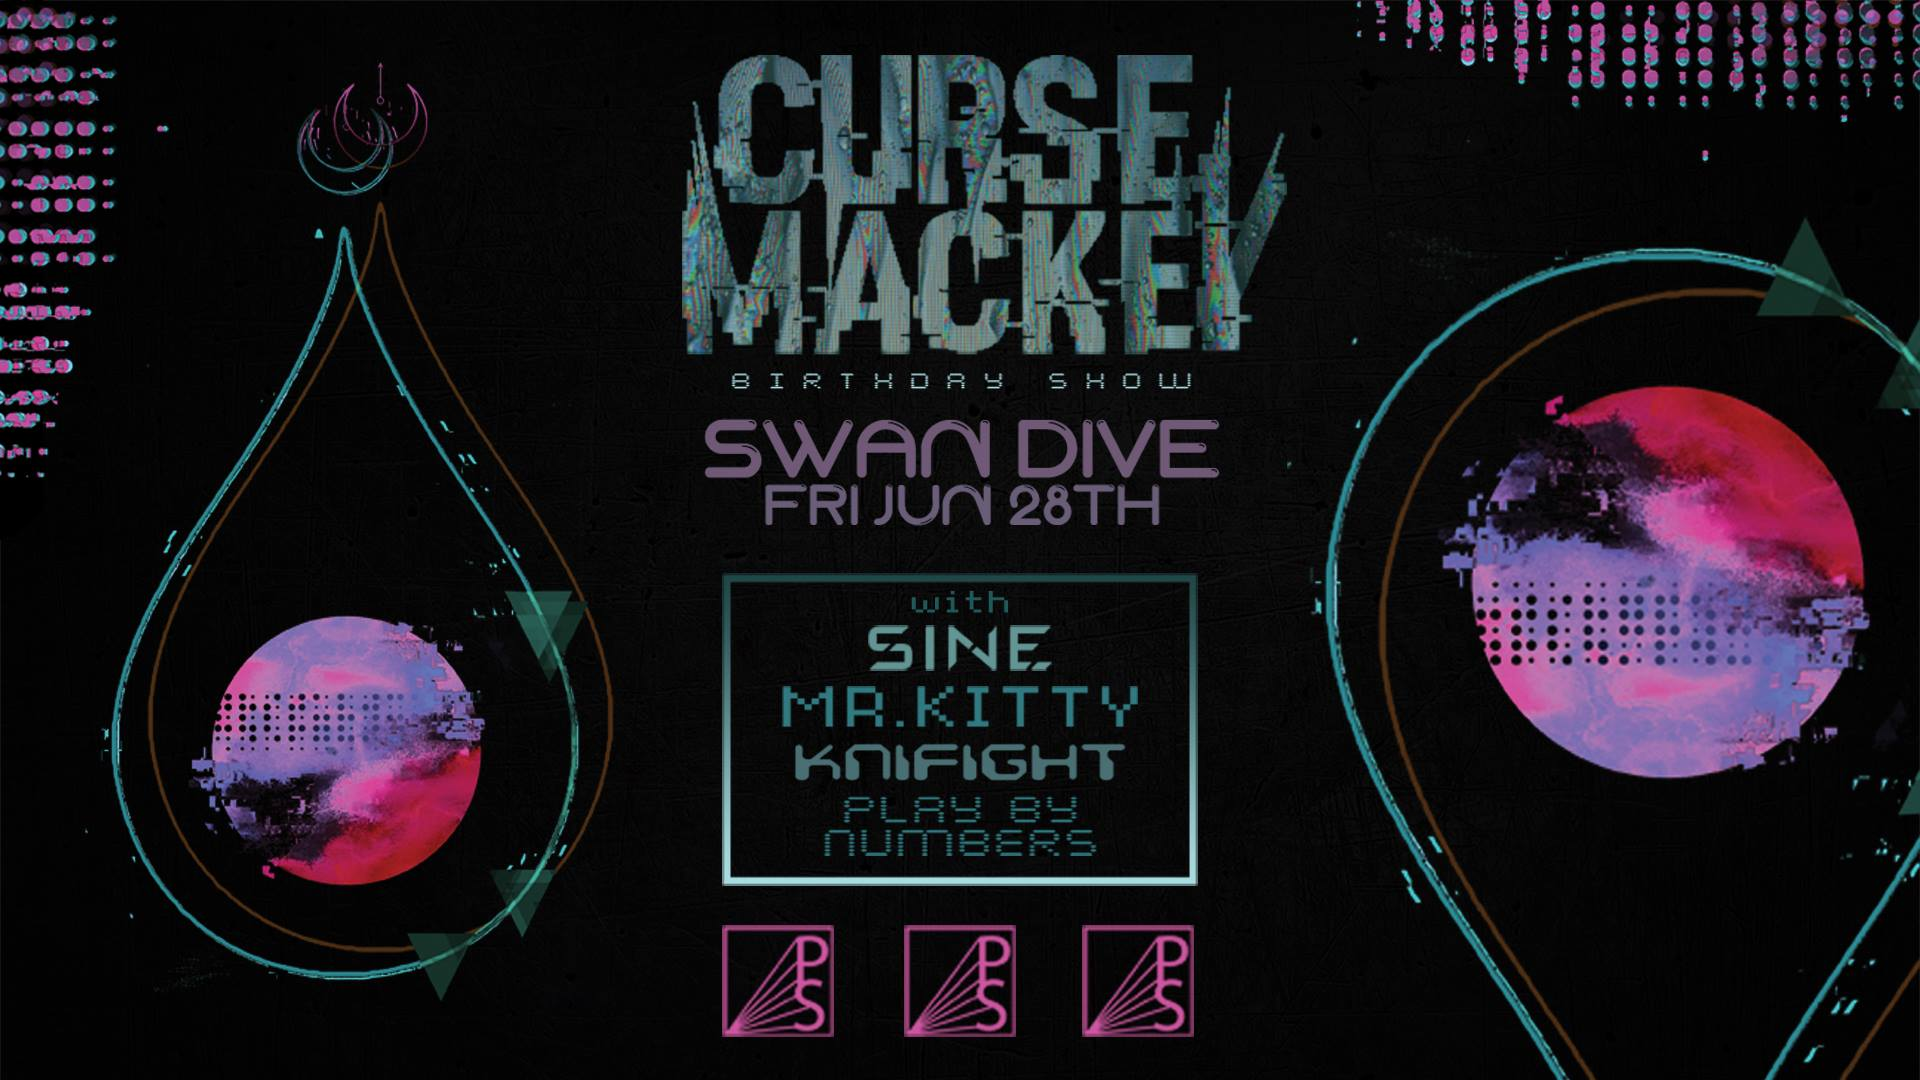 Curse Mackey, Mr.Kitty, Knifight, SINE and More